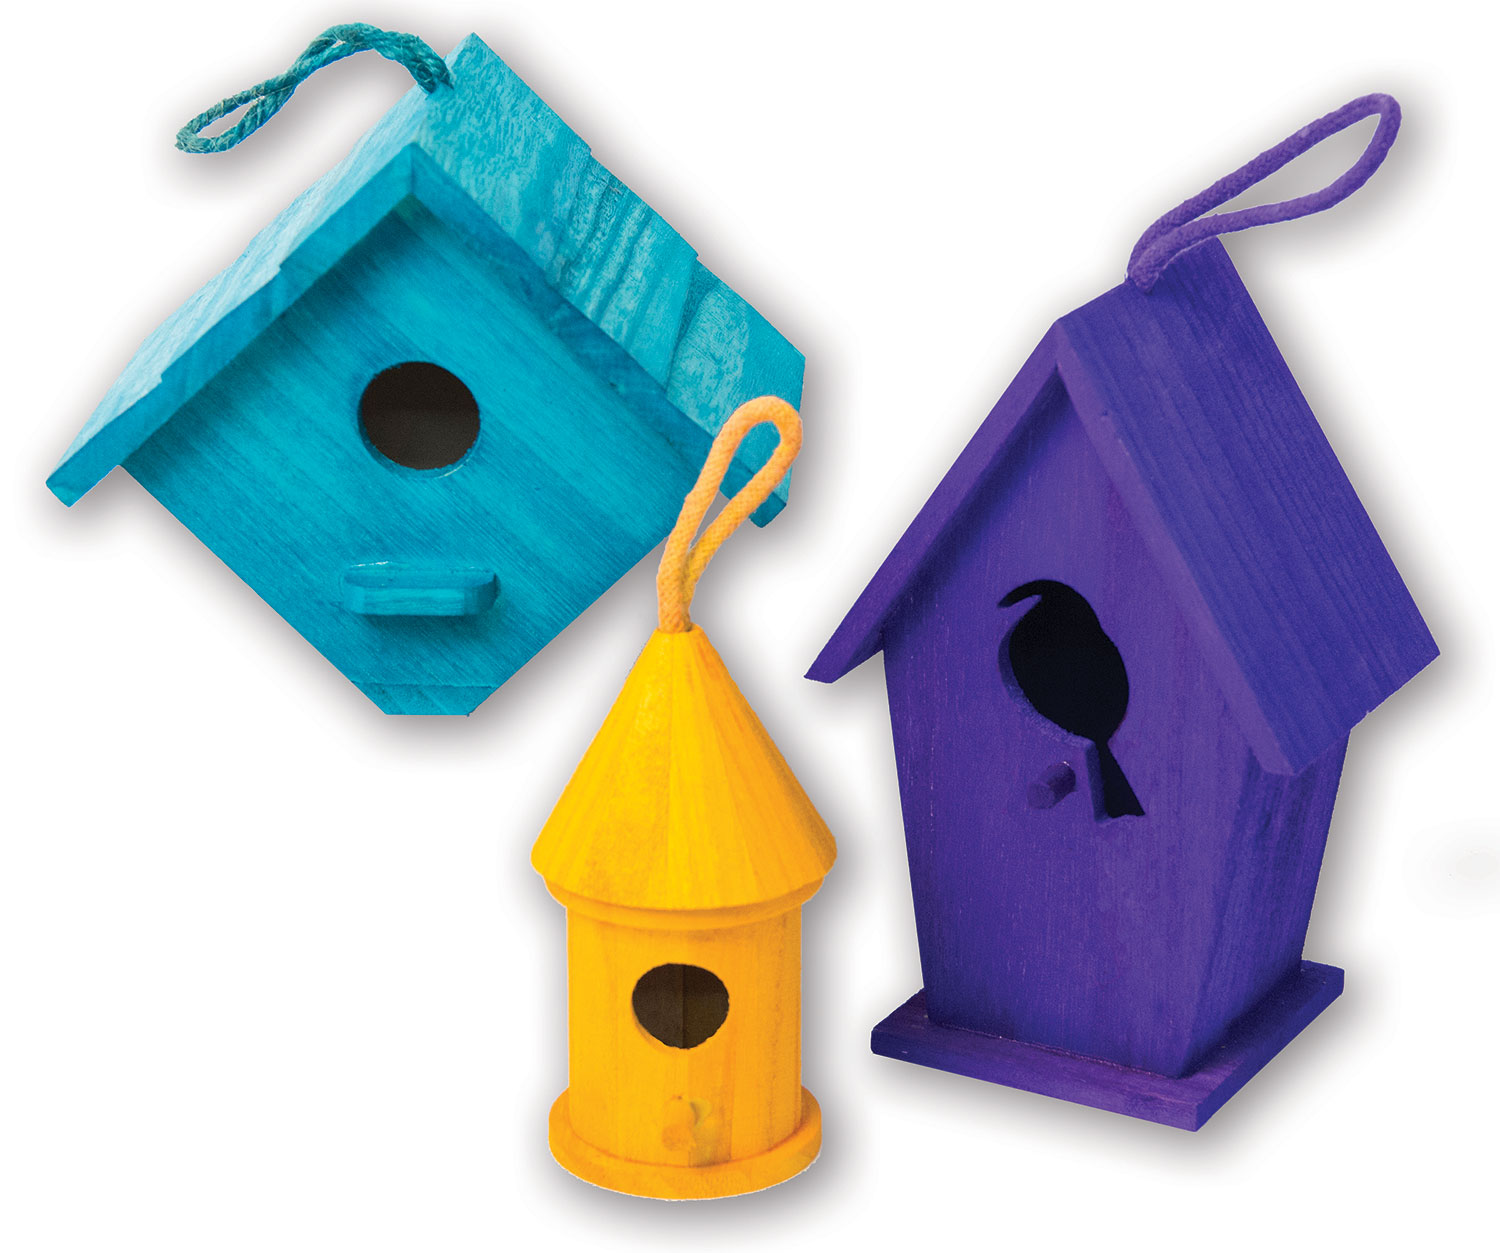 Basic-Dye-Bird-House-no-background.jpg